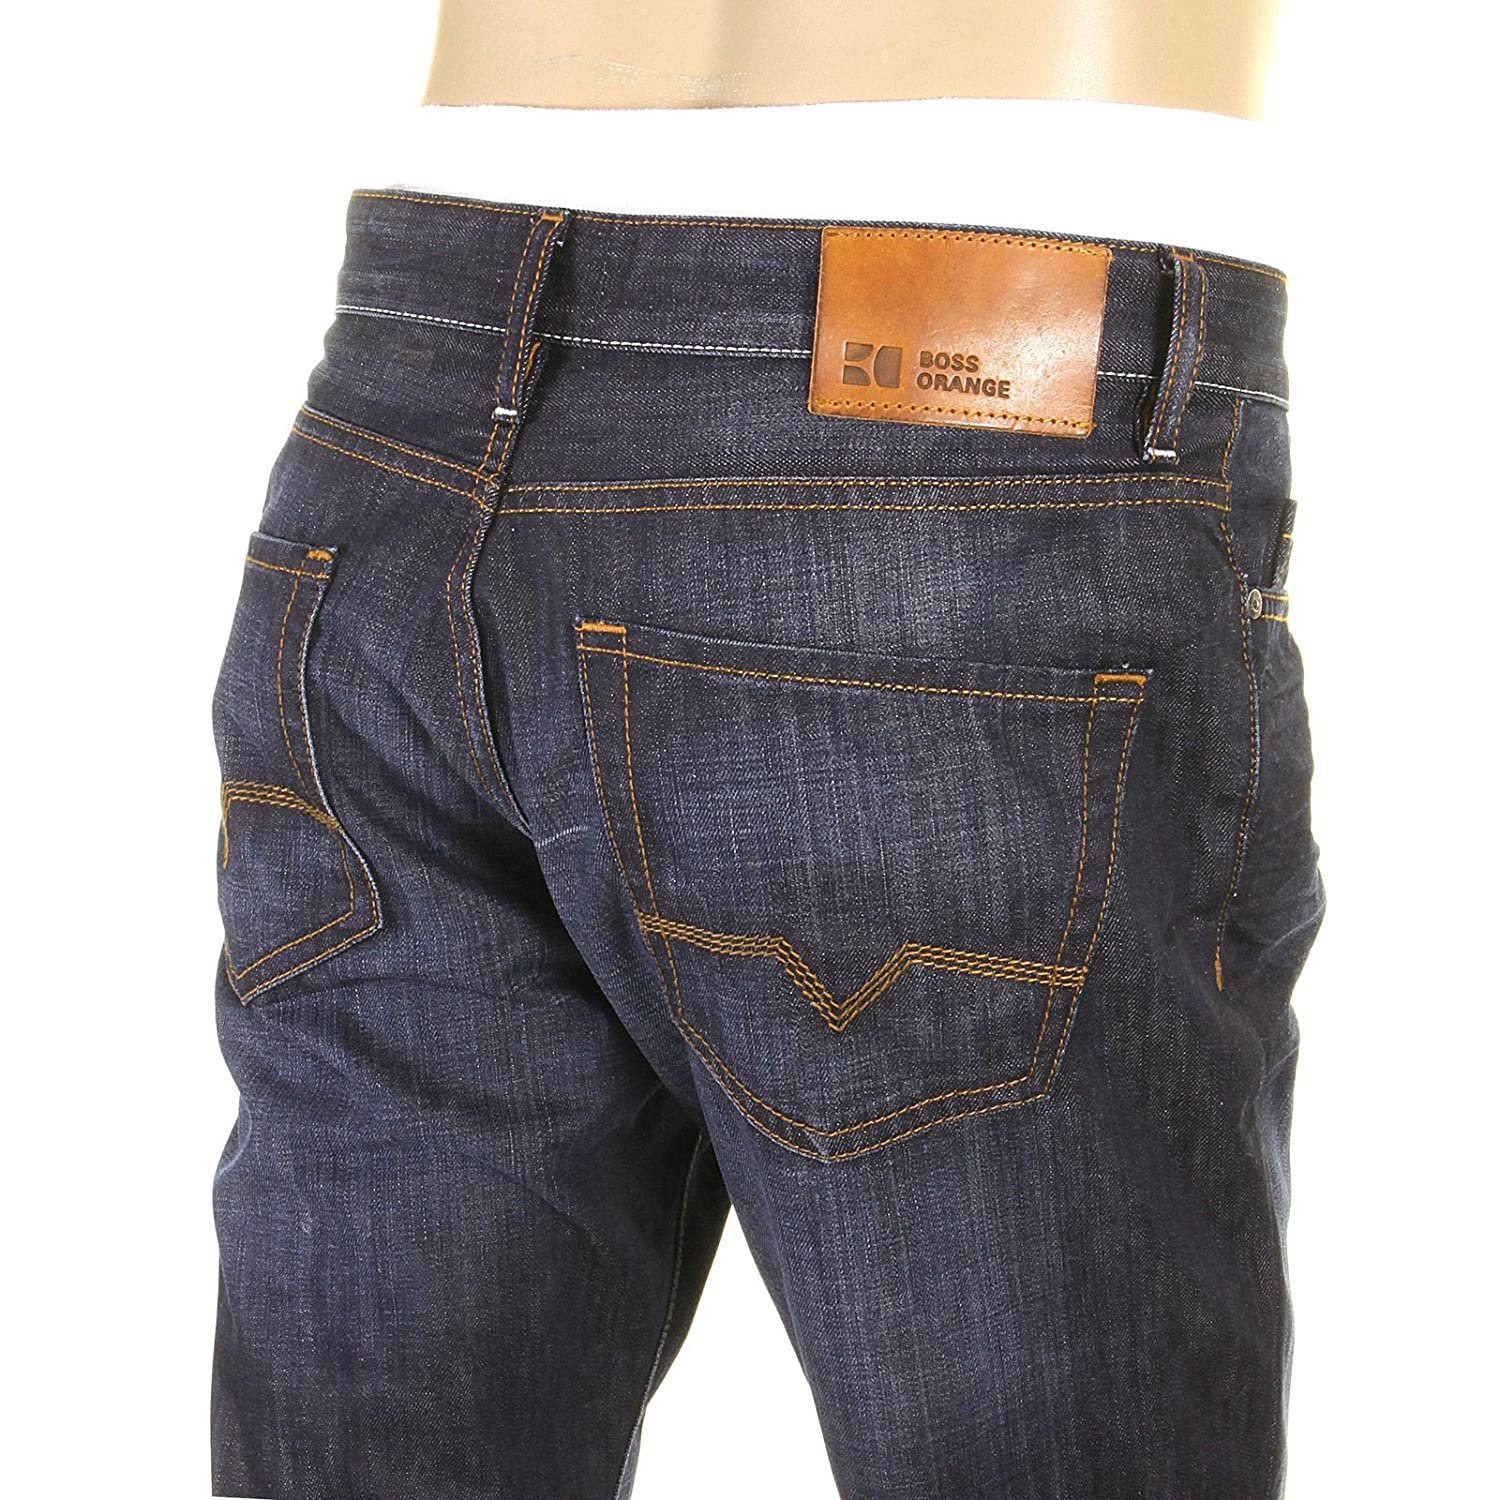 7a7a59e990 Boss Orange jeans Orange25 moonlight washed indigo 50177587 402 Hugo Boss  denim jean BOSS2614: Amazon.ca: Clothing & Accessories